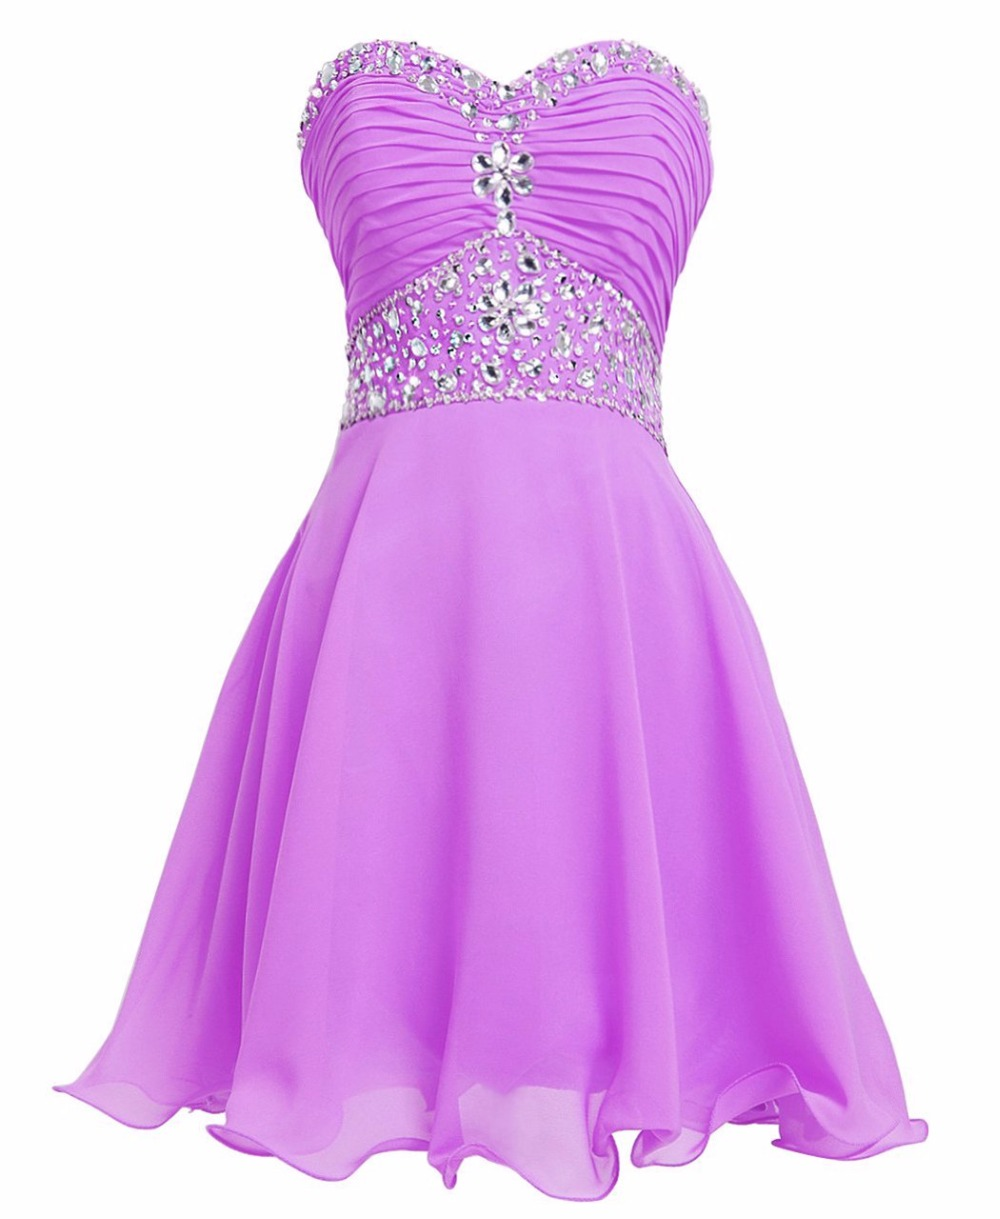 Short bridesmaid dress picture more detailed picture about purple sweetheart short bridesmaid dresses crystal beaded chiffon knee length mint green wedding party dress ombrellifo Images